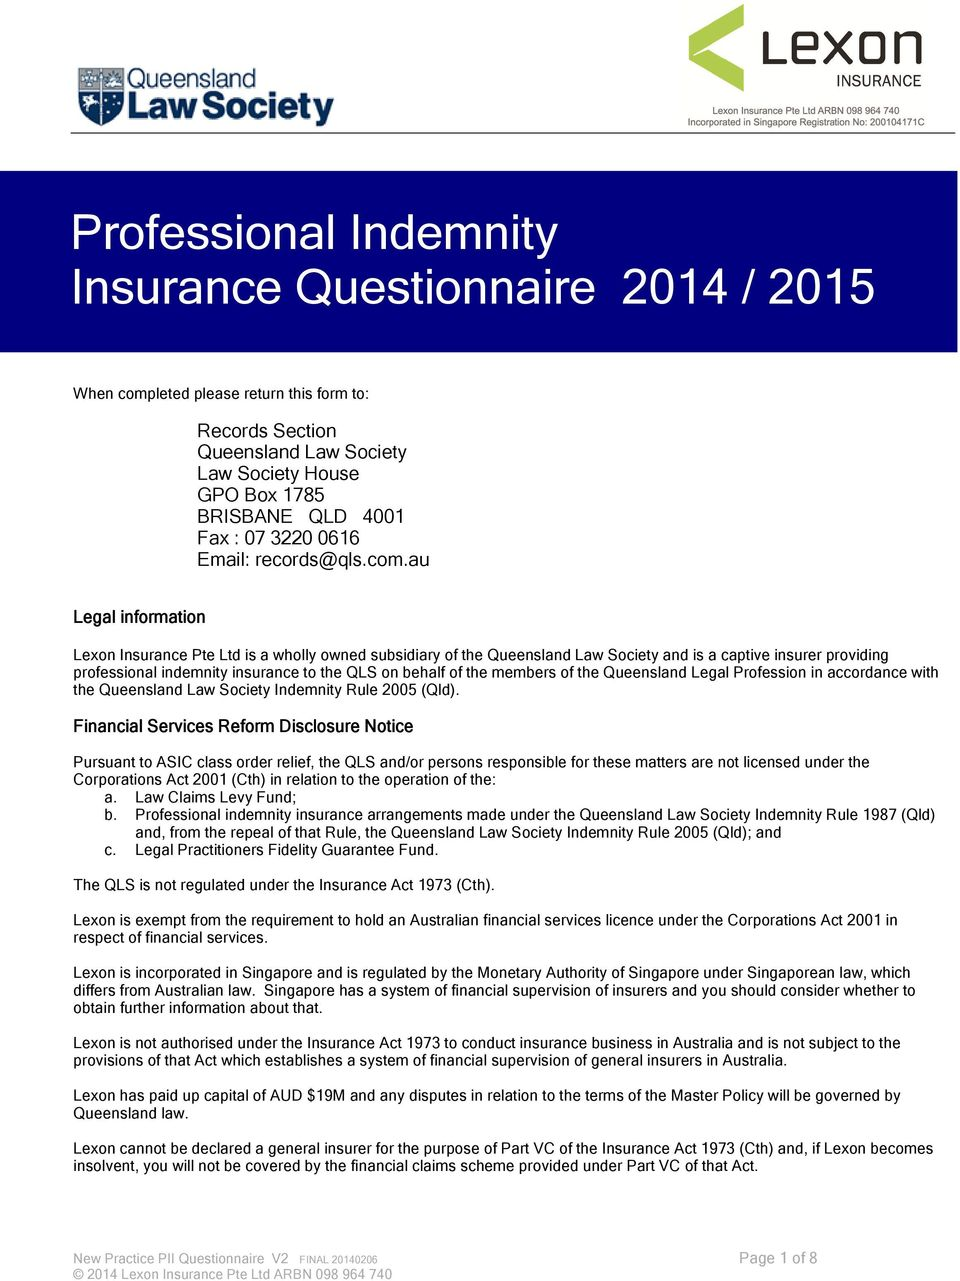 au Legal information Lexon Insurance Pte Ltd is a wholly owned subsidiary of the Queensland Law Society and is a captive insurer providing professional indemnity insurance to the QLS on behalf of the